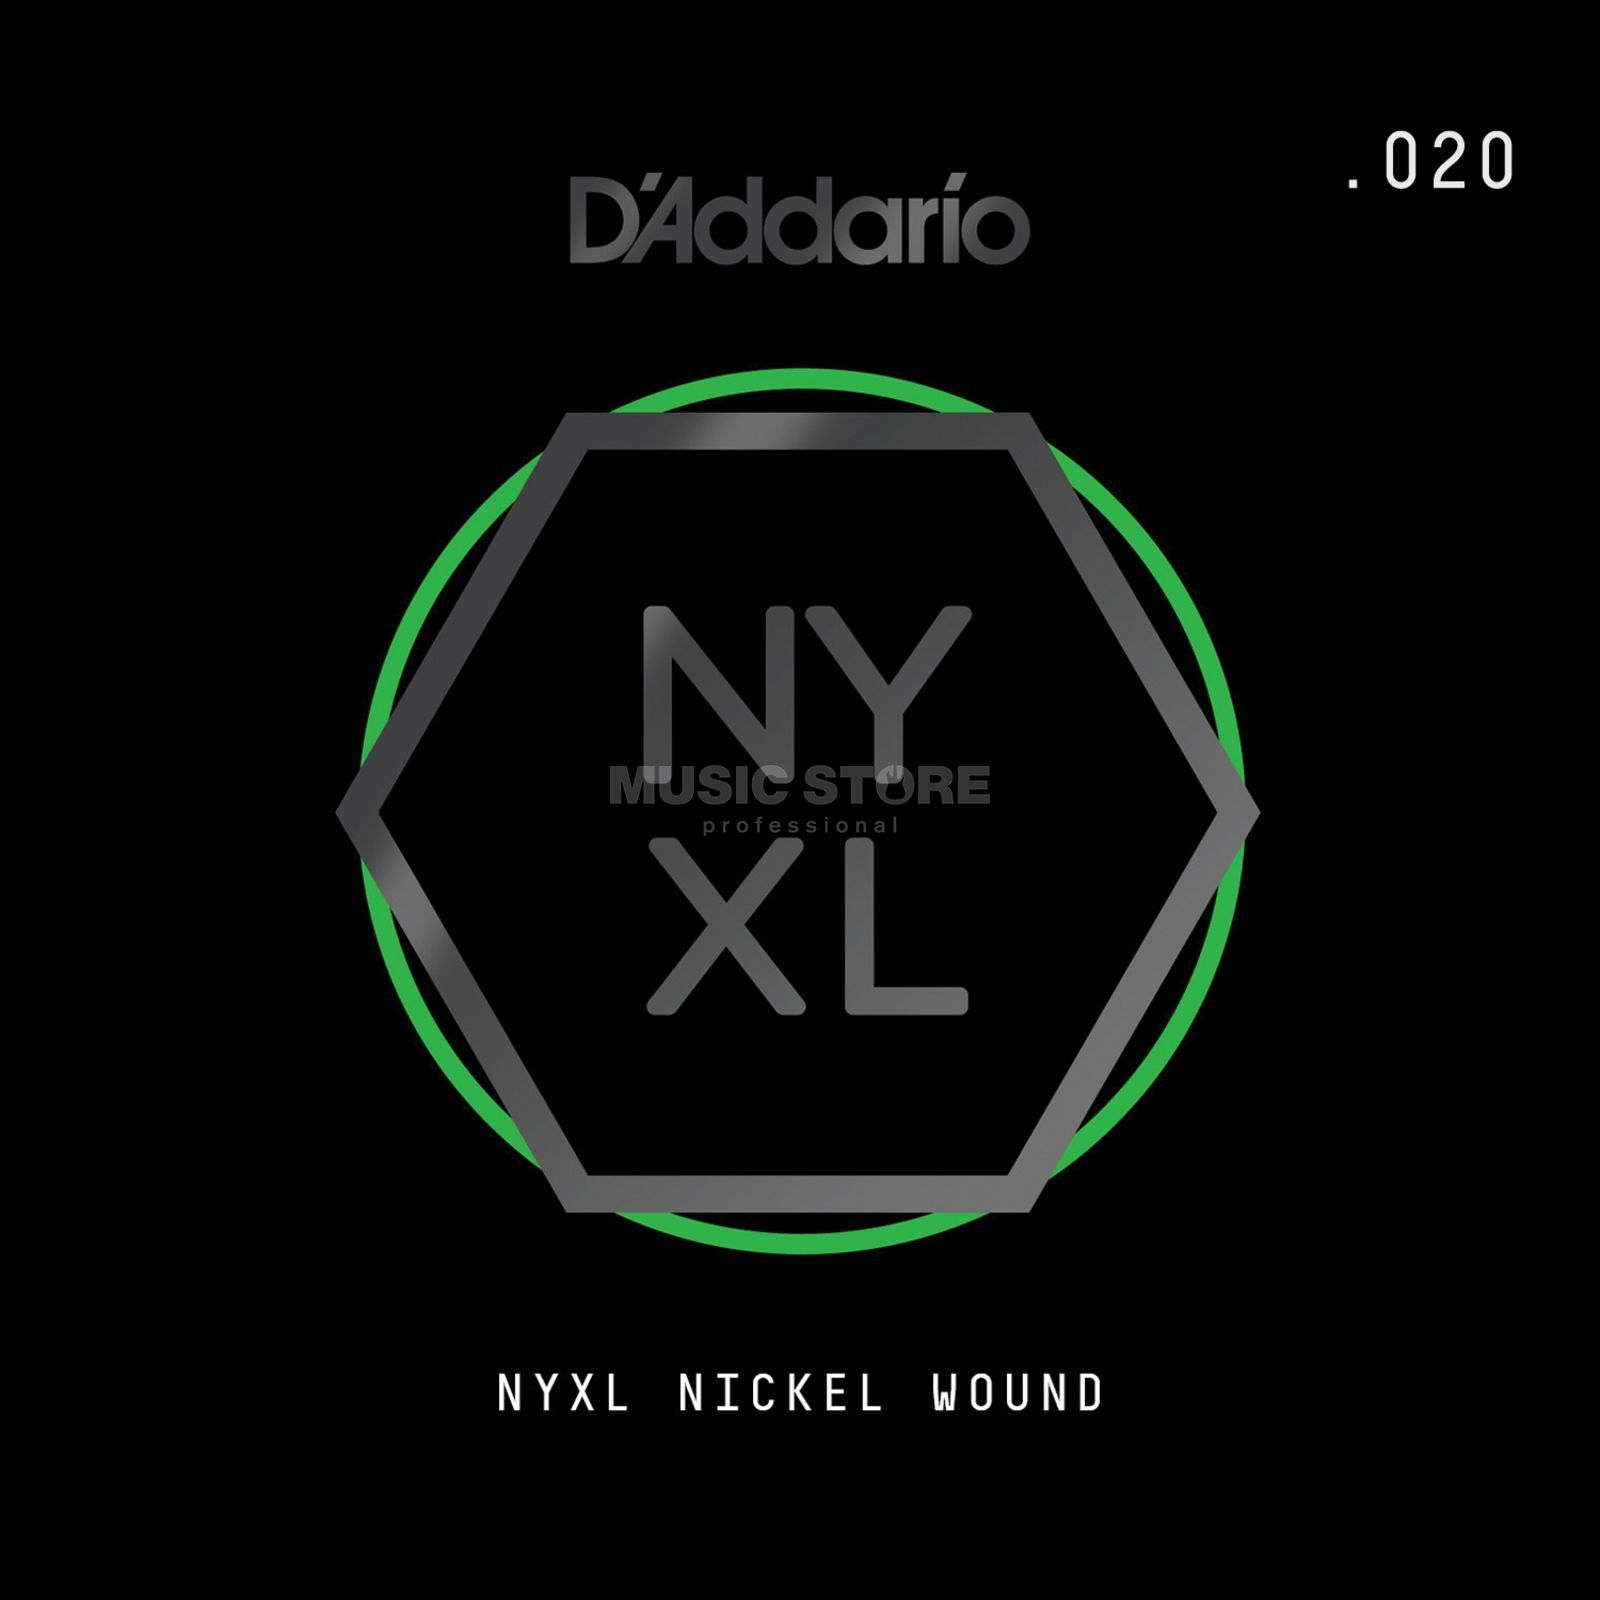 D'Addario NYNW020 Single String Nickel Wound Product Image